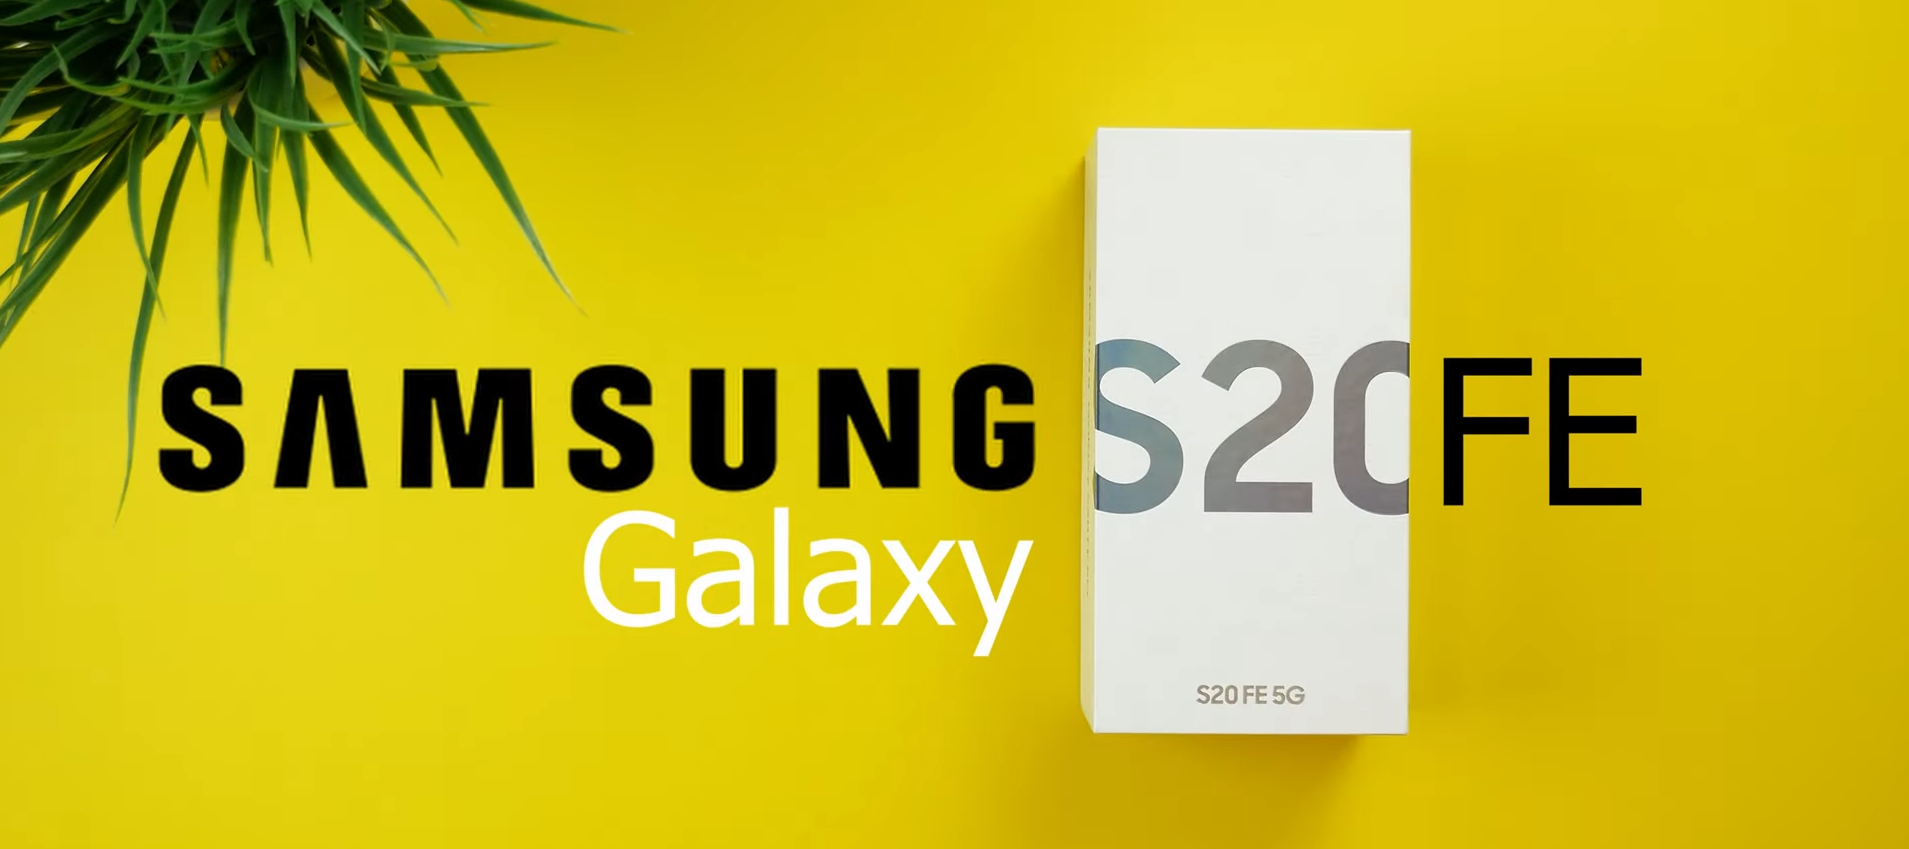 Samsung Galaxy S20 Fan Edition 5G I Unboxing &erster Eindruck I